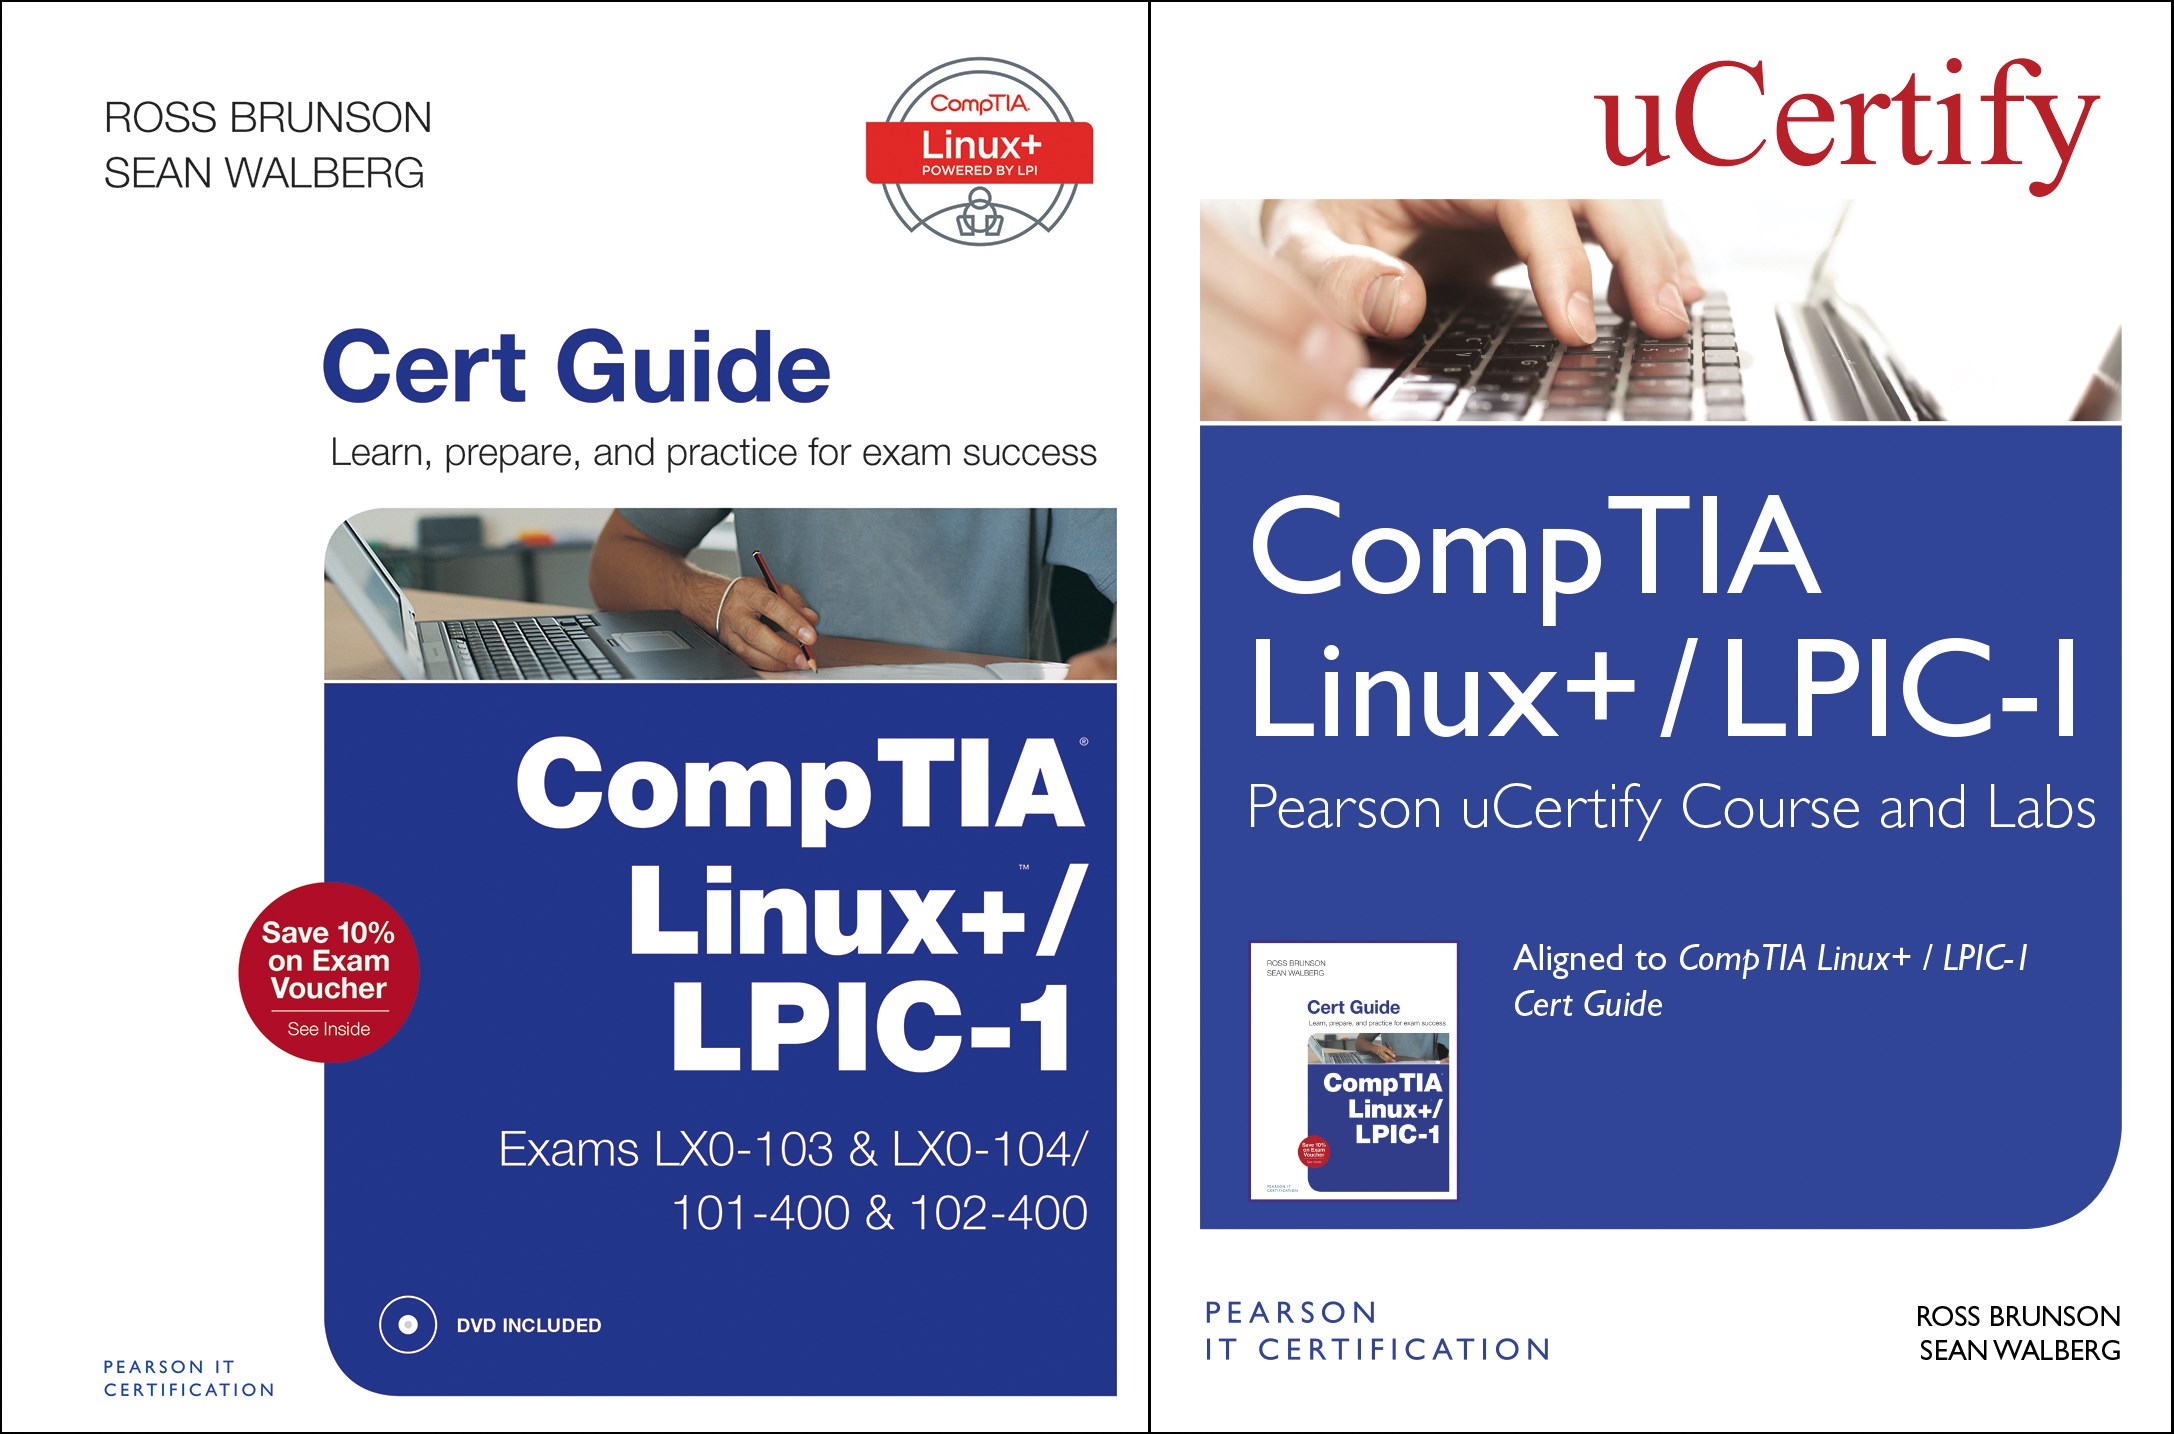 CompTIA Linux+ / LPIC-1 Textbook and Pearson uCertify Course and Labs Bundle